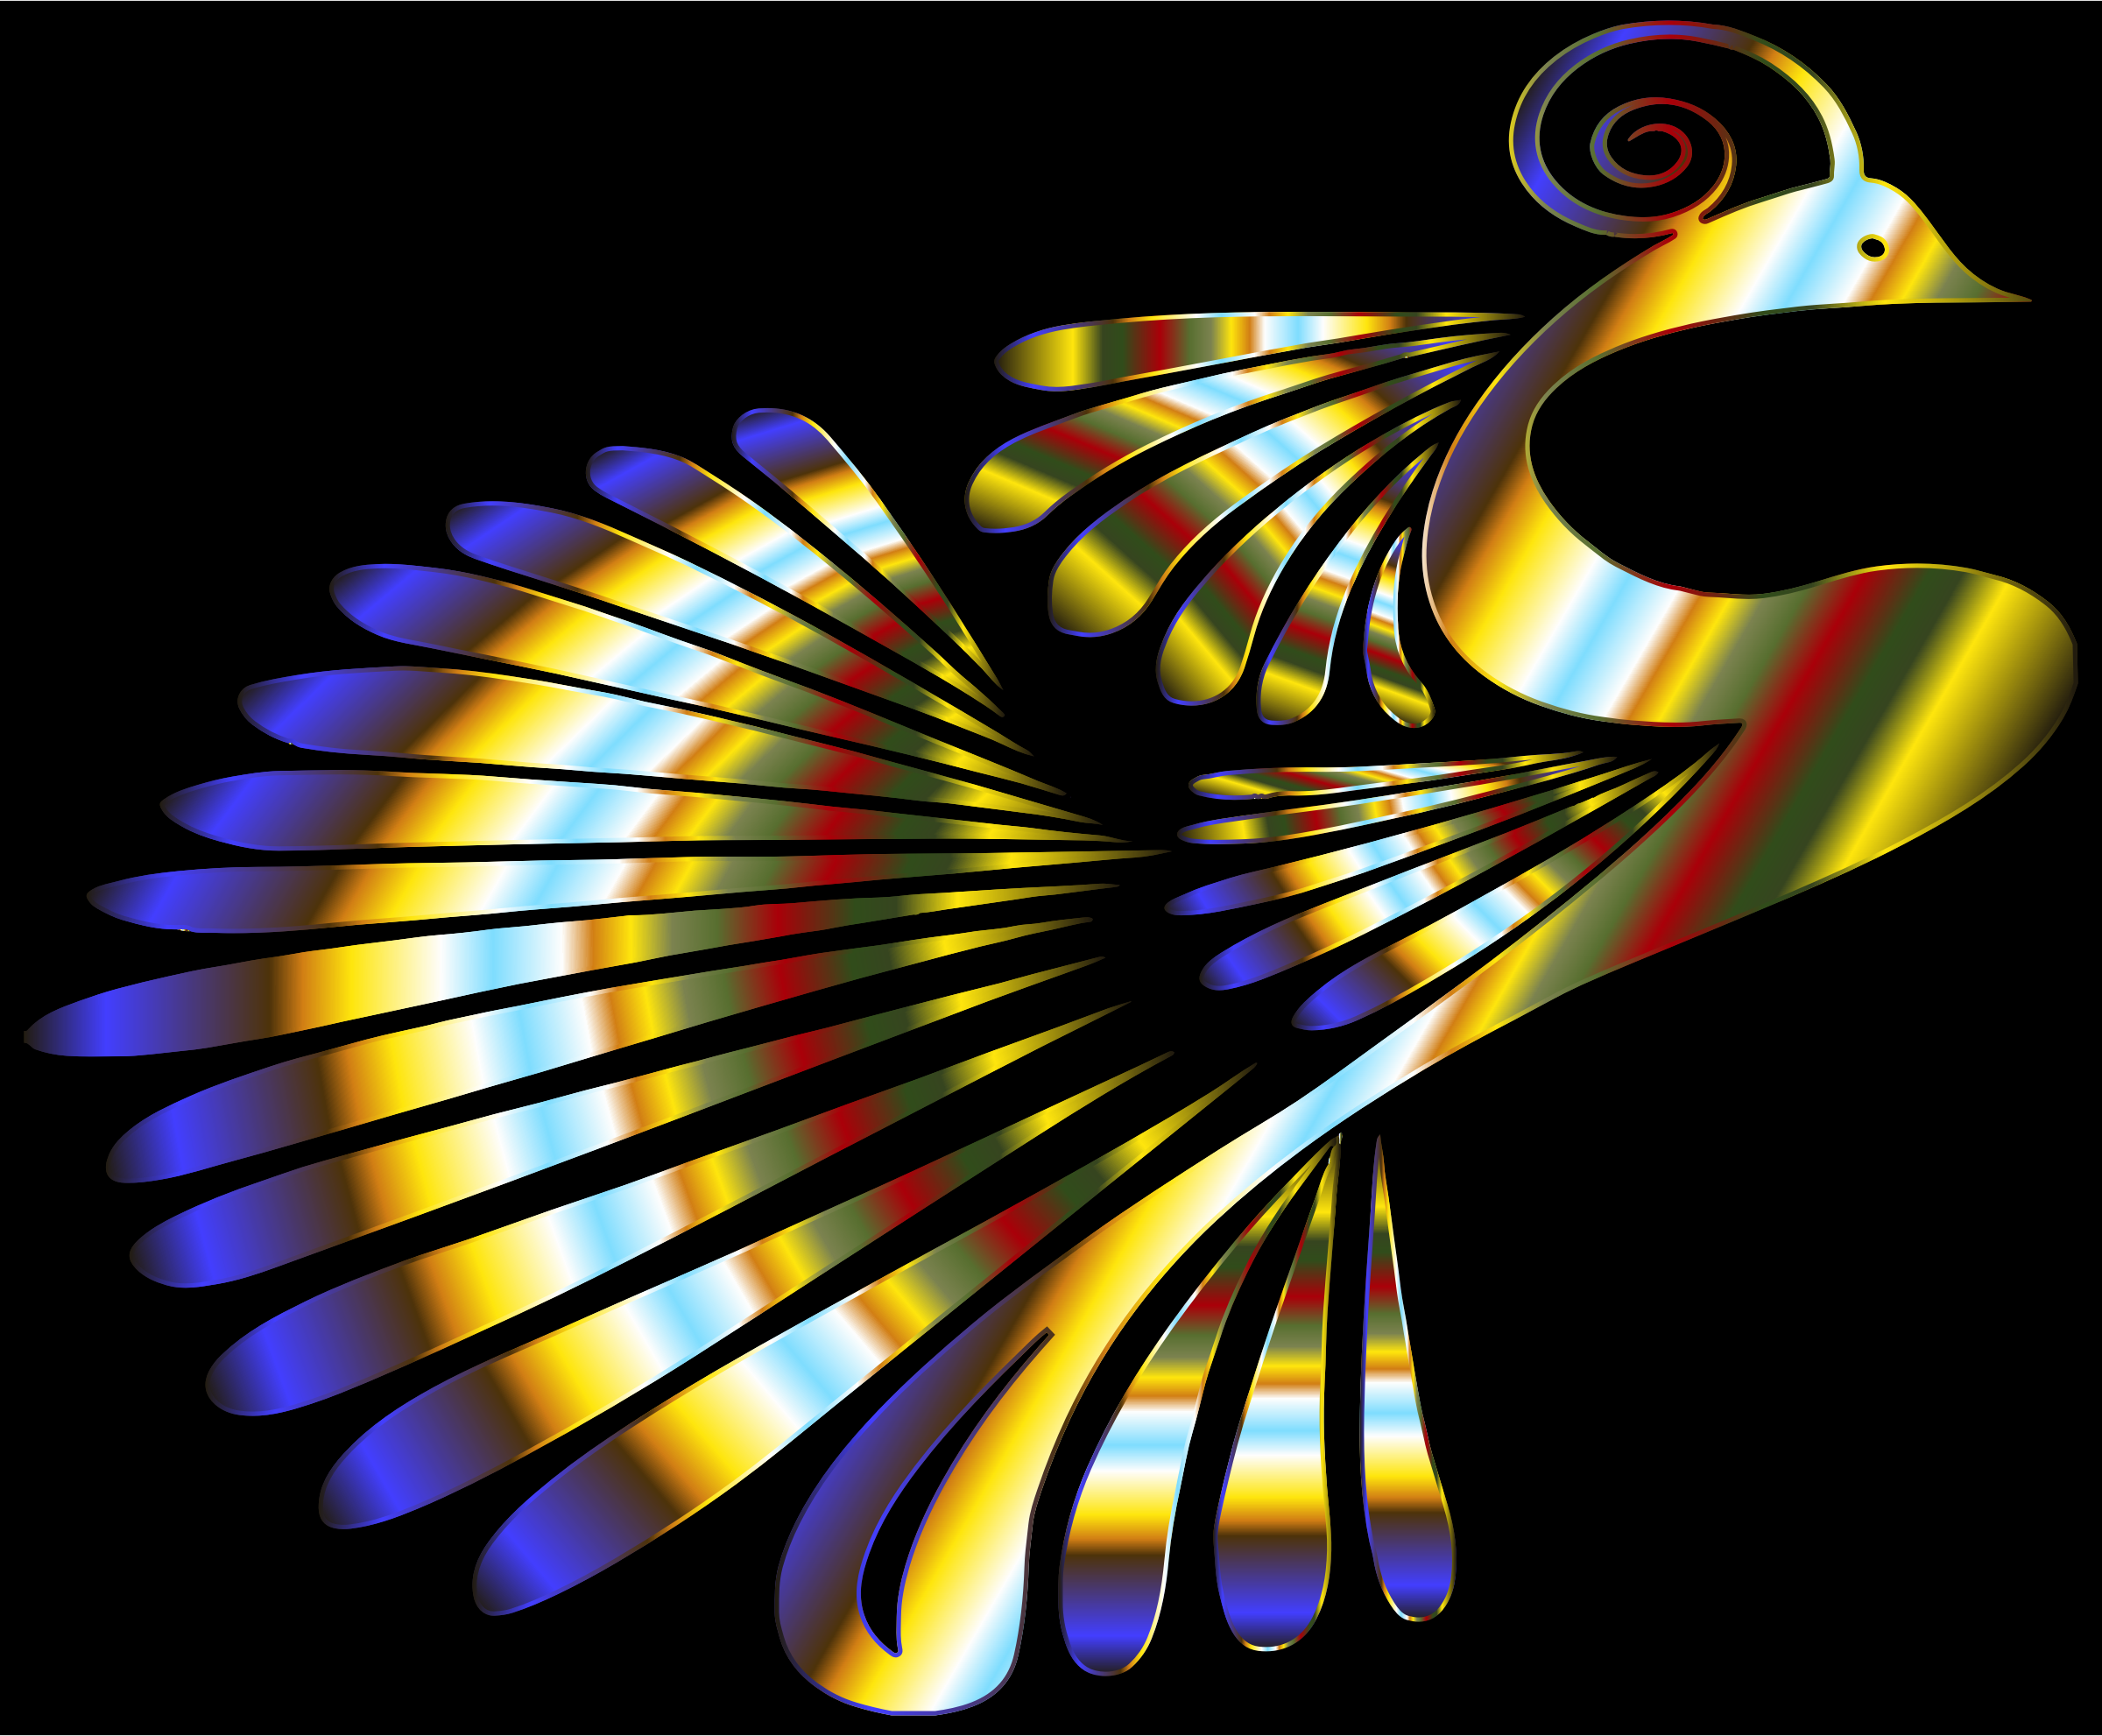 Colorful Stylized Peacock 17 by GDJ